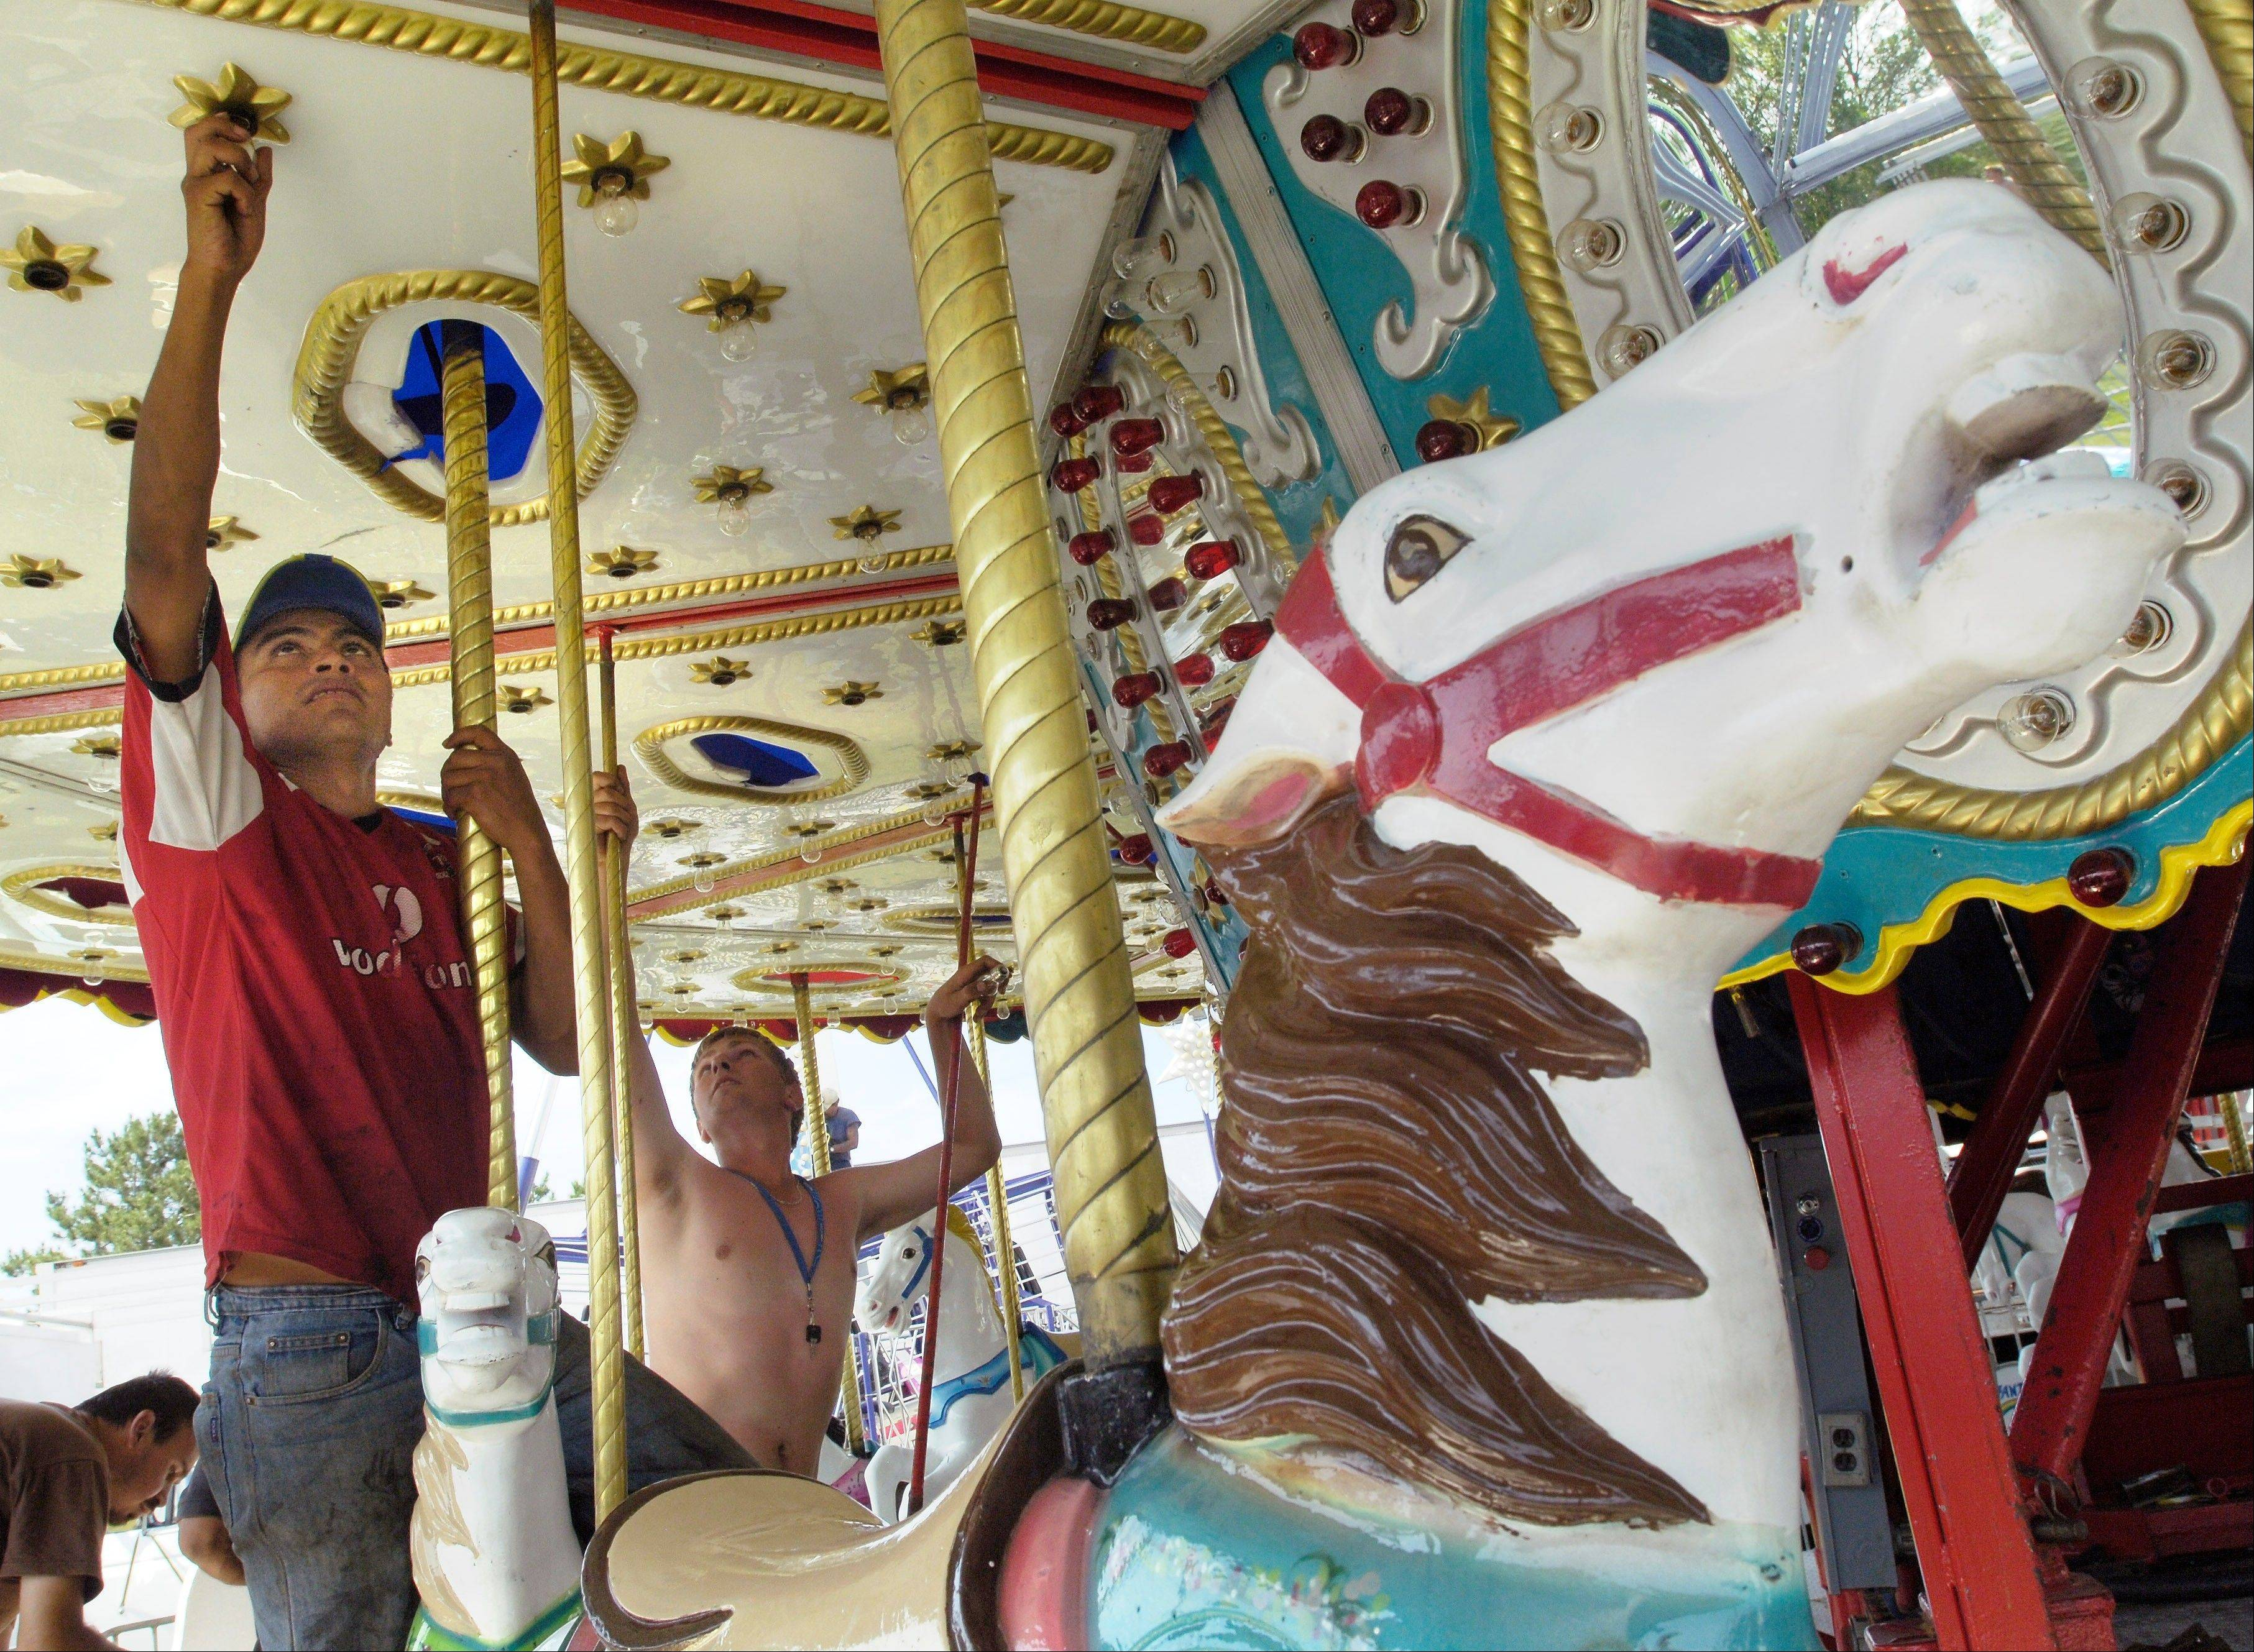 The finishing touches are put on the carousel at the Mount Prospect festival in Melas Park.